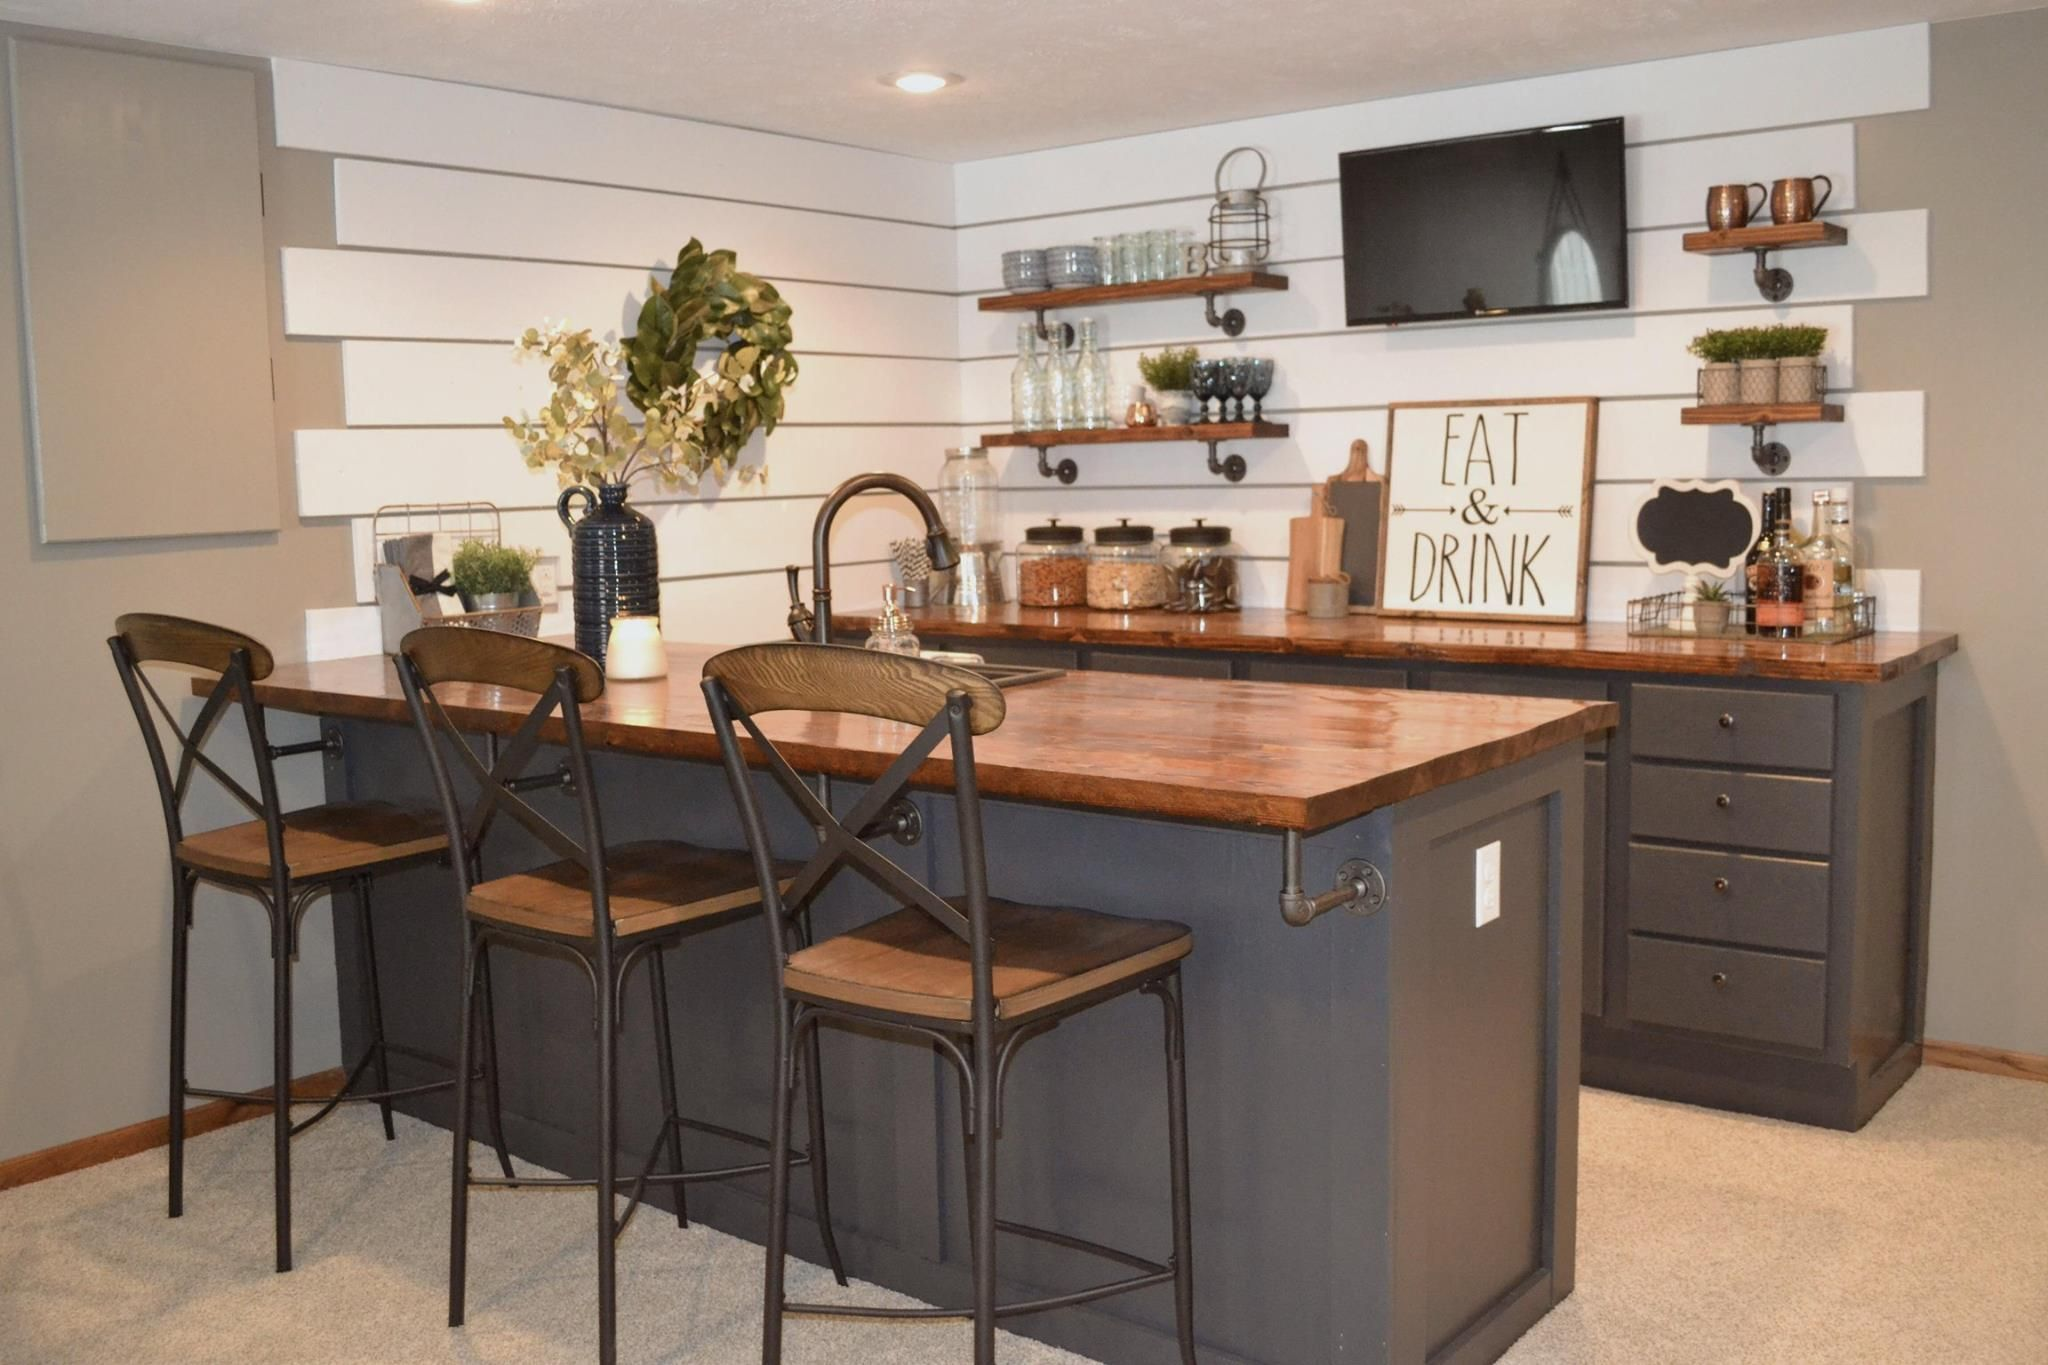 41 Magnificent Basement Bar Ideas For Home Escaping And Having Fun